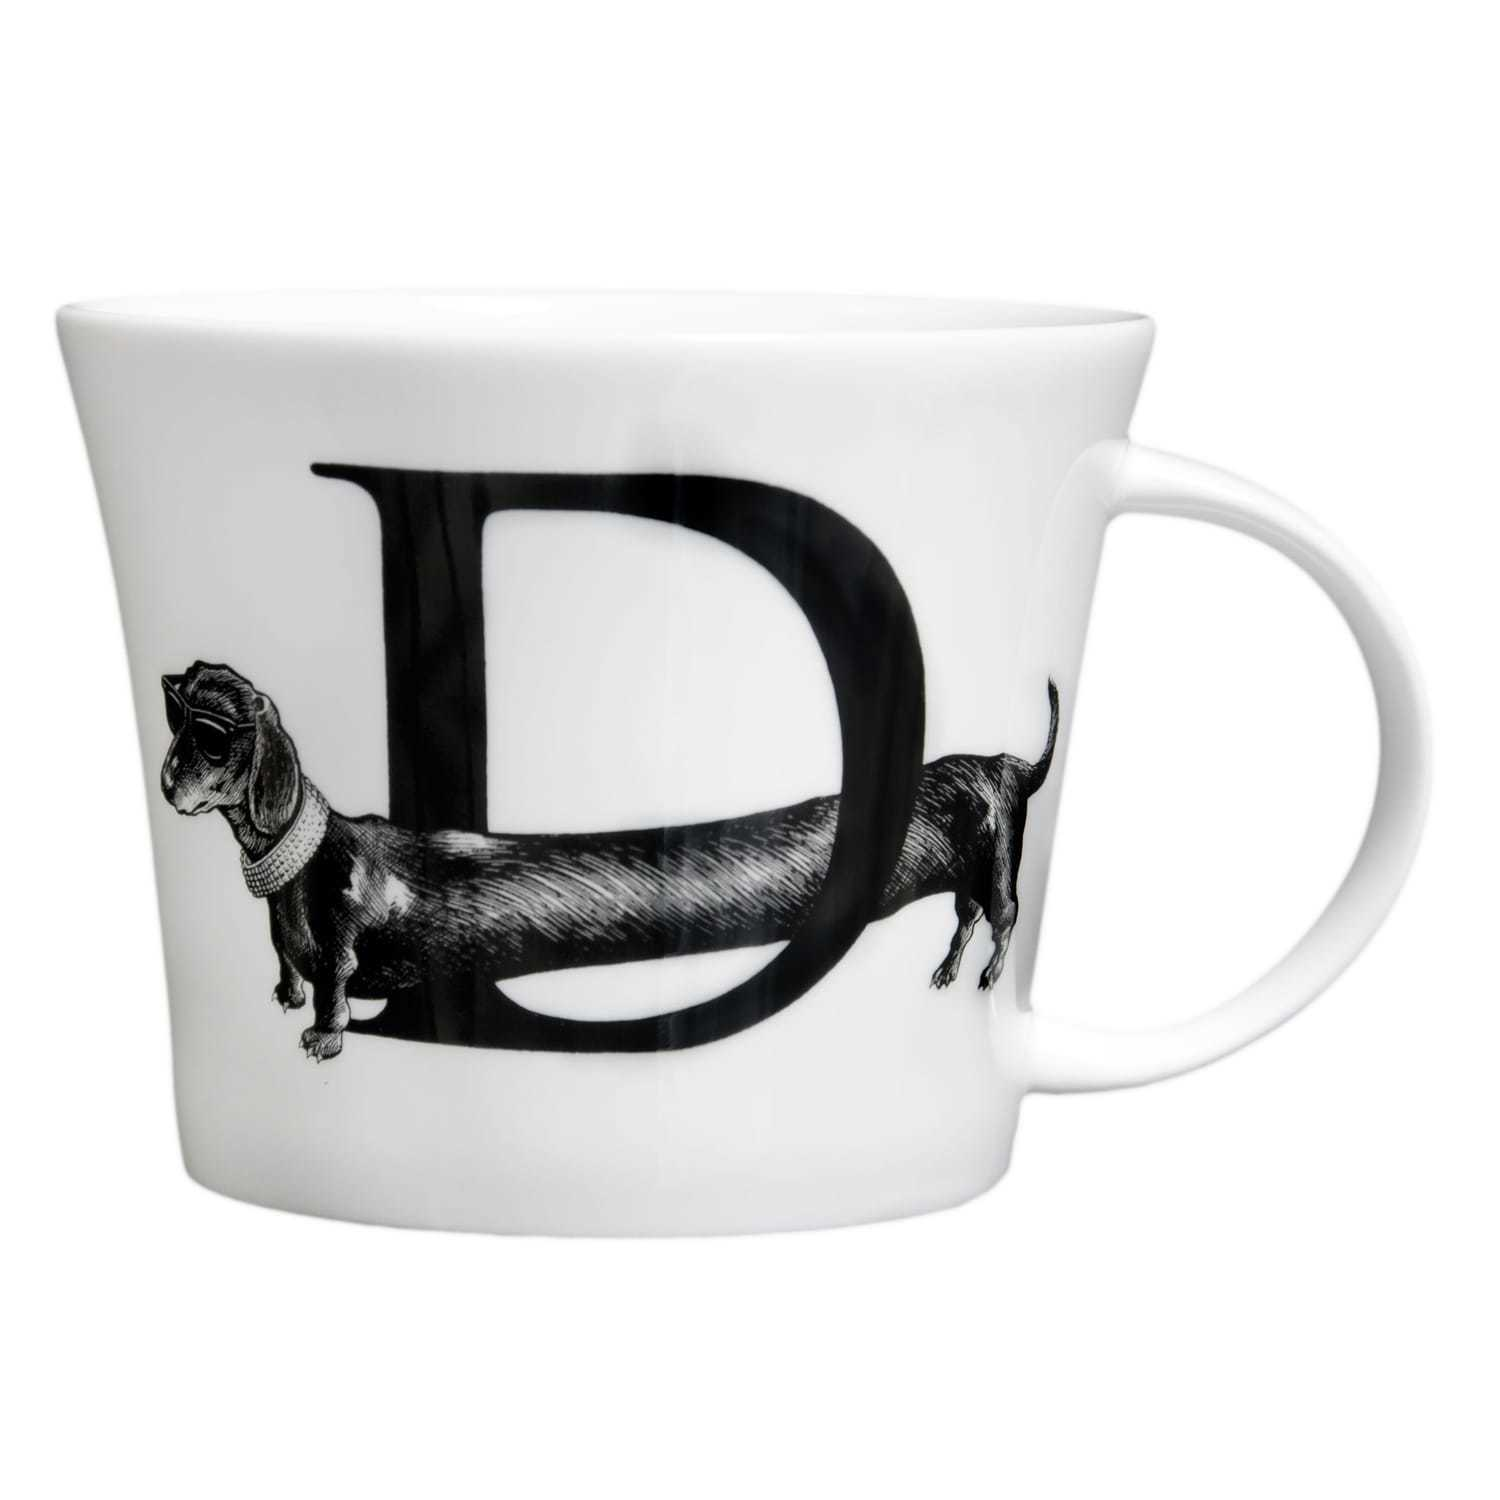 D letter with dog across it in ink design on white bone china mug